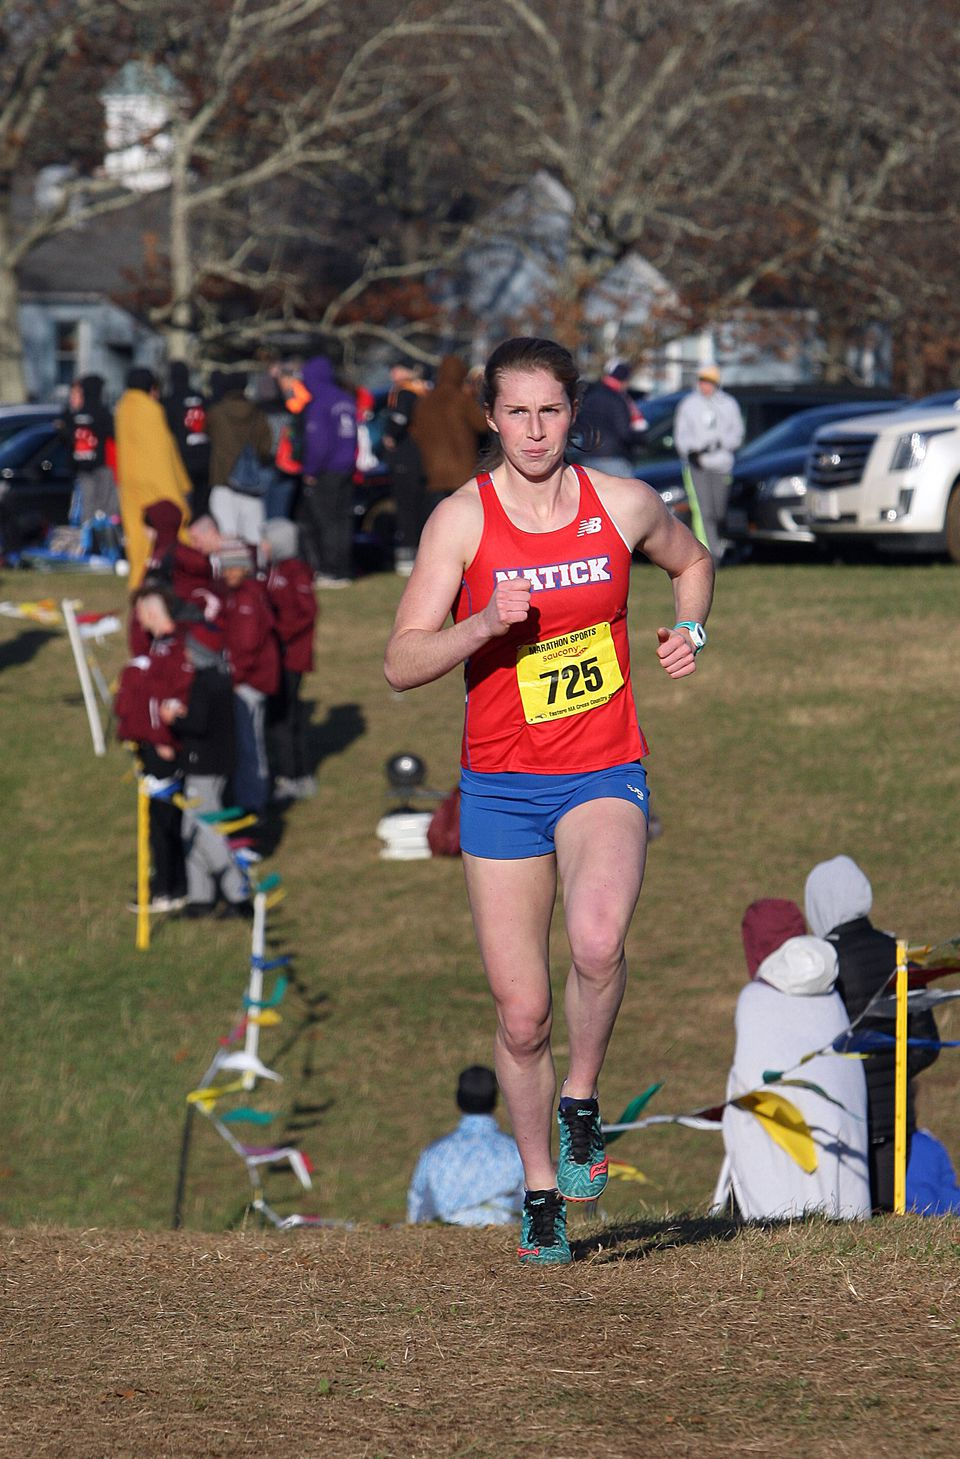 Grace Connolly clocked a sizzling 17 minute, 4 second-finish, shattering the course record at the Wrentham Developmental Center by 23 seconds.